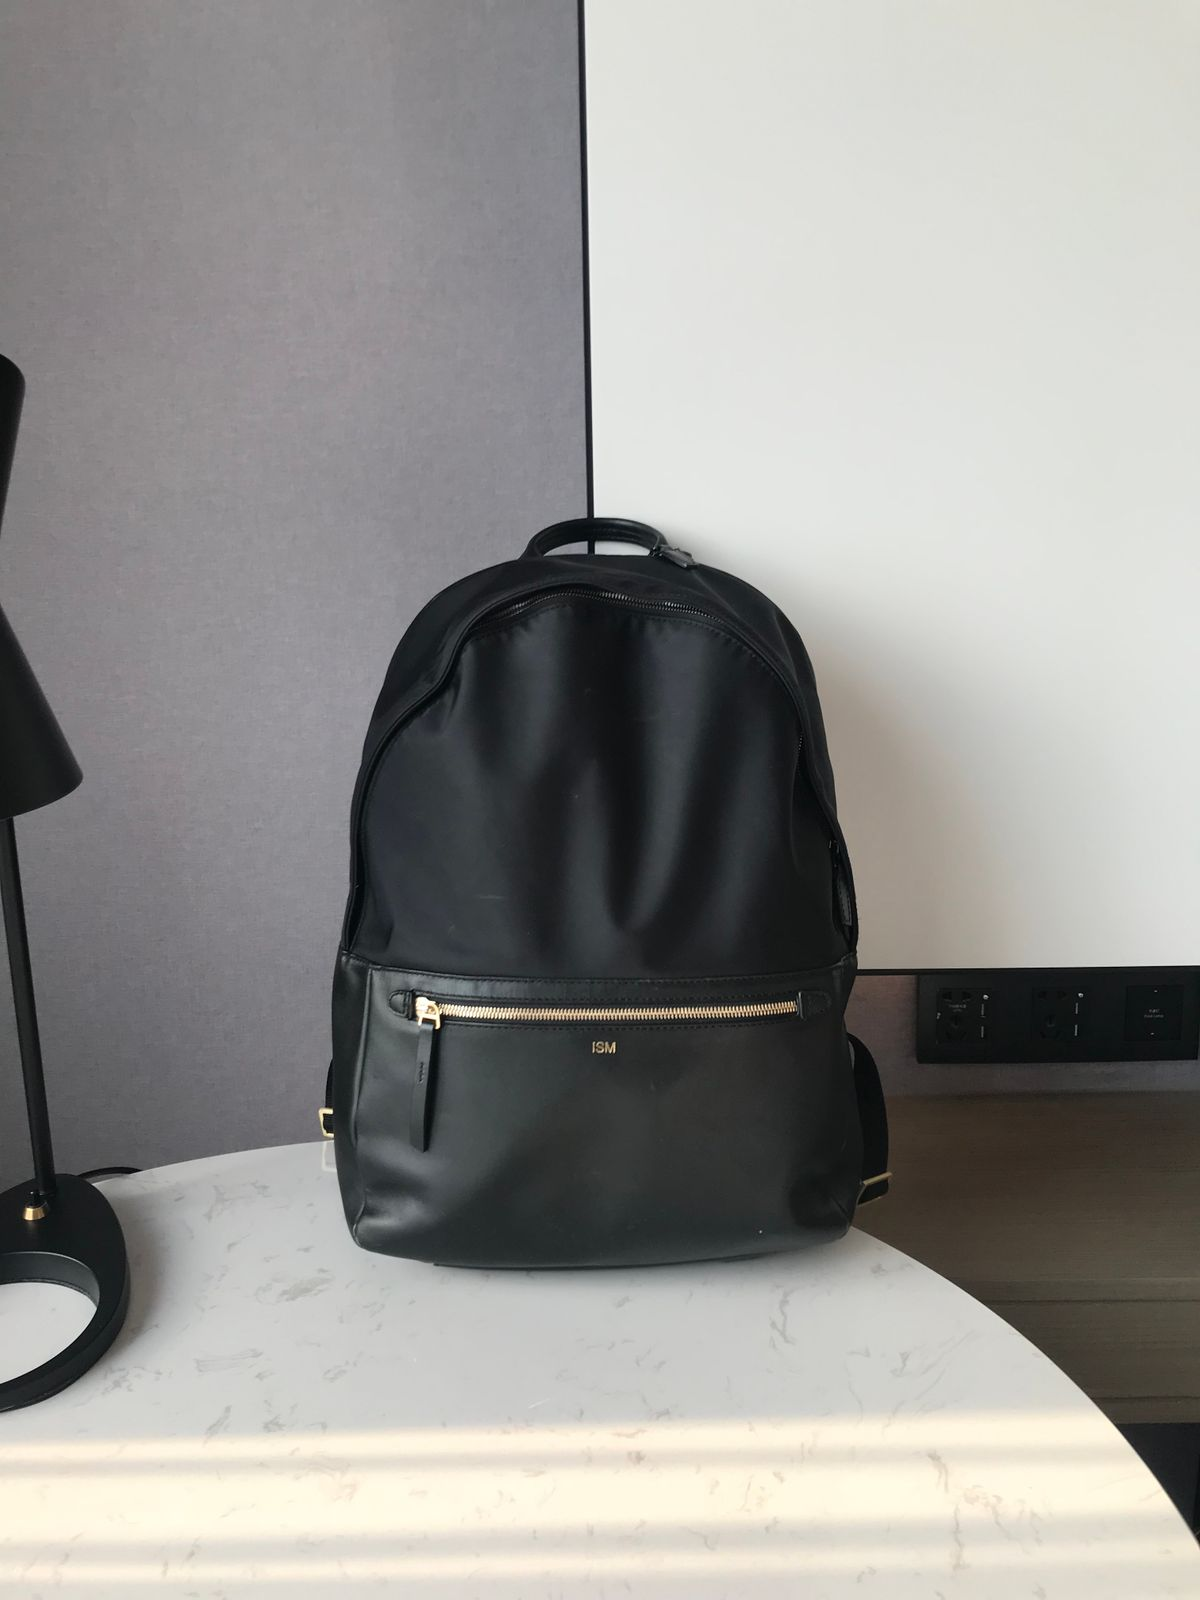 7065ae29f3905 ISM  The Classic (Black) - Leather Laptop Backpack